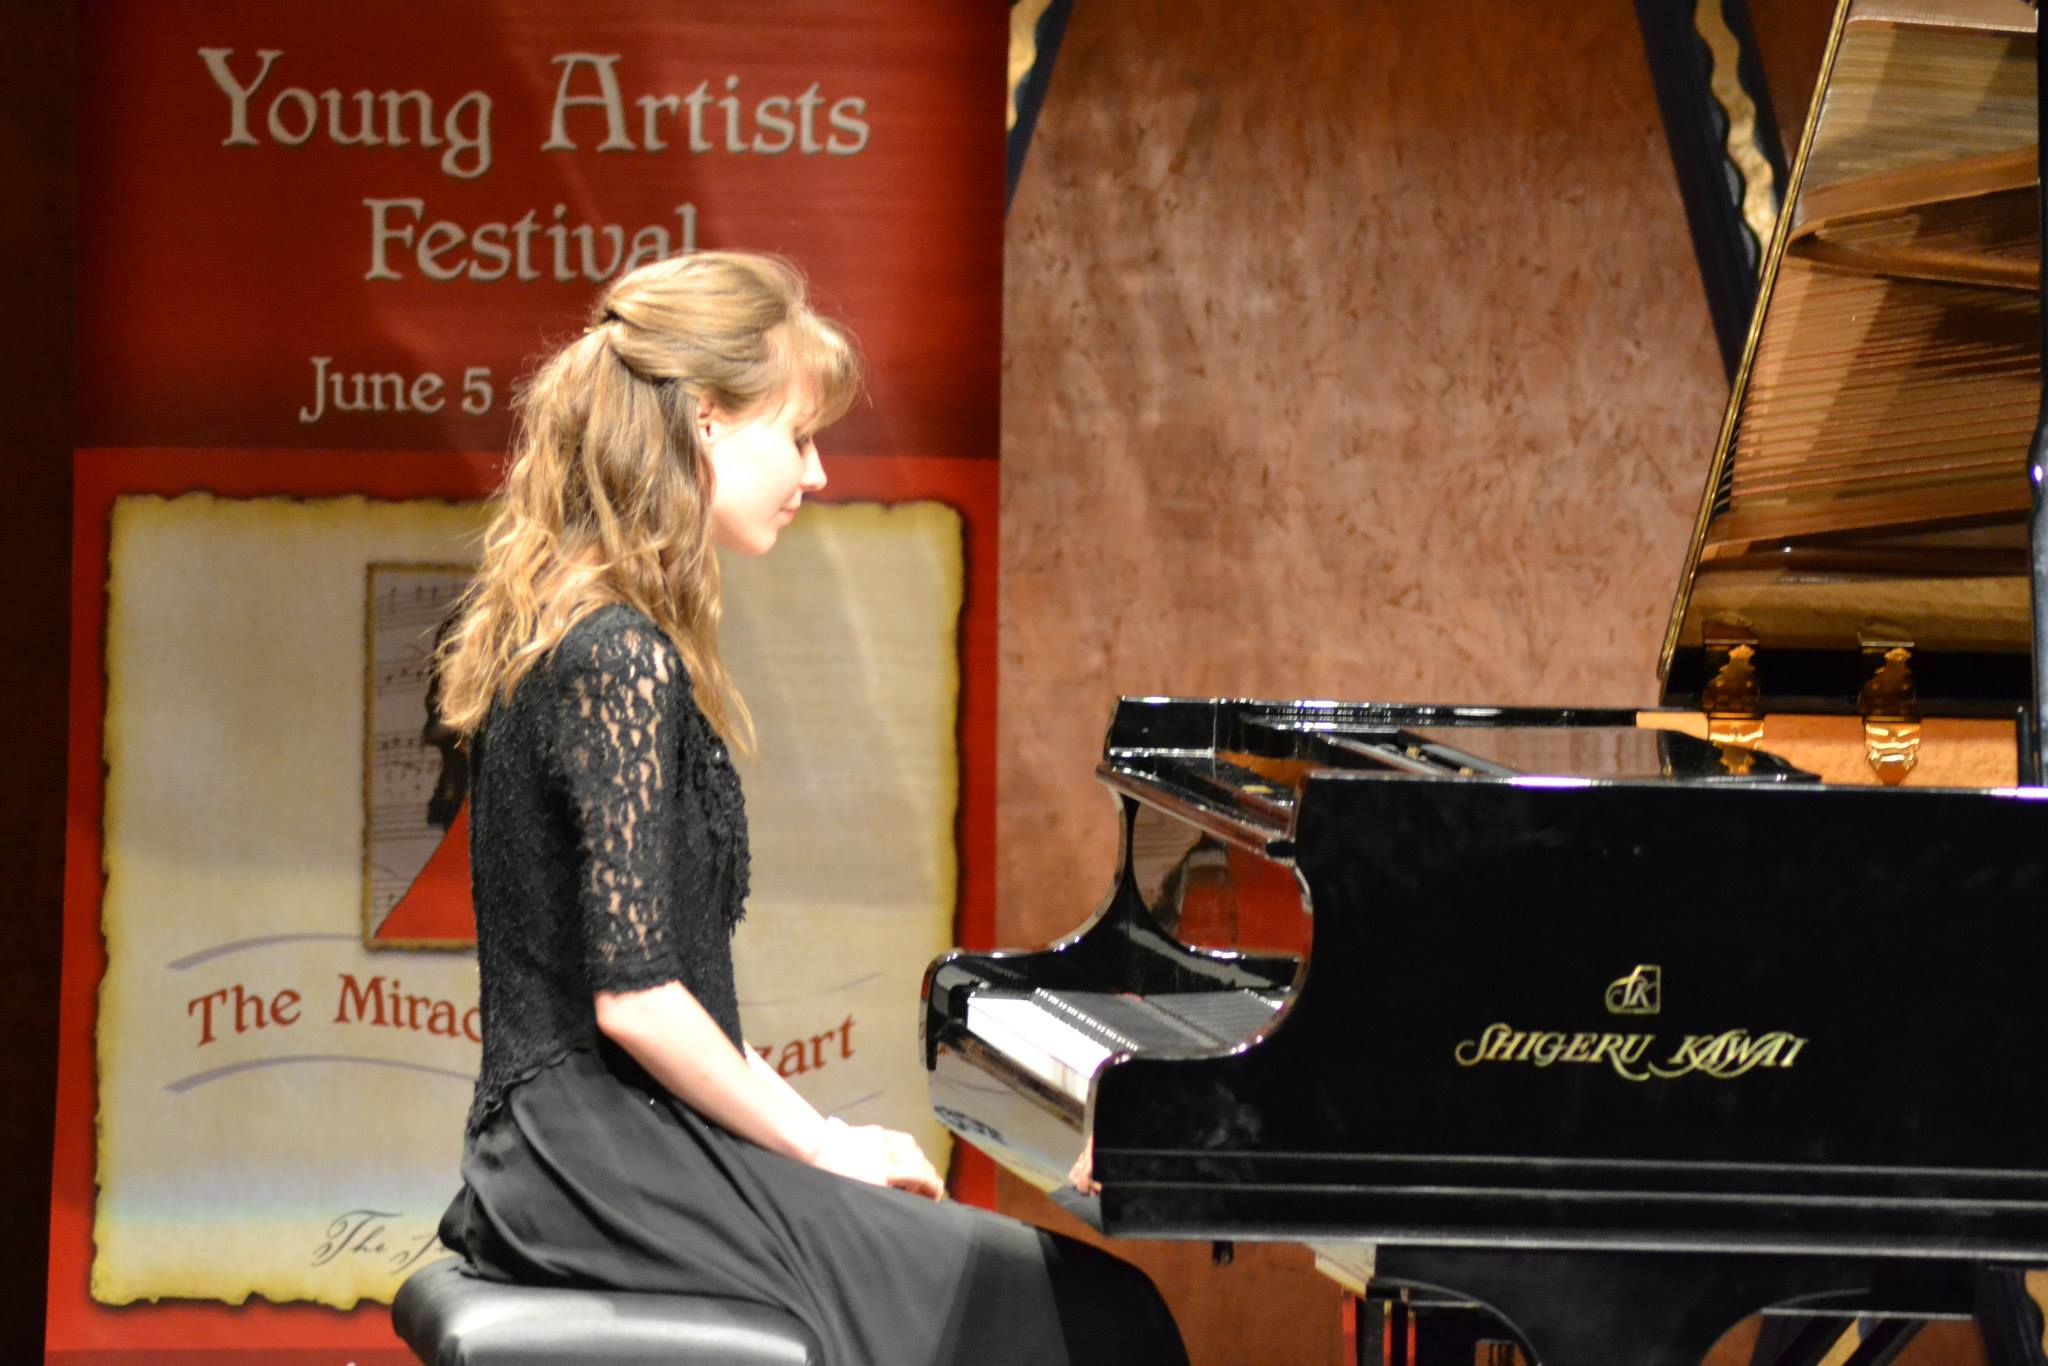 Performing at PianoTexas Festival